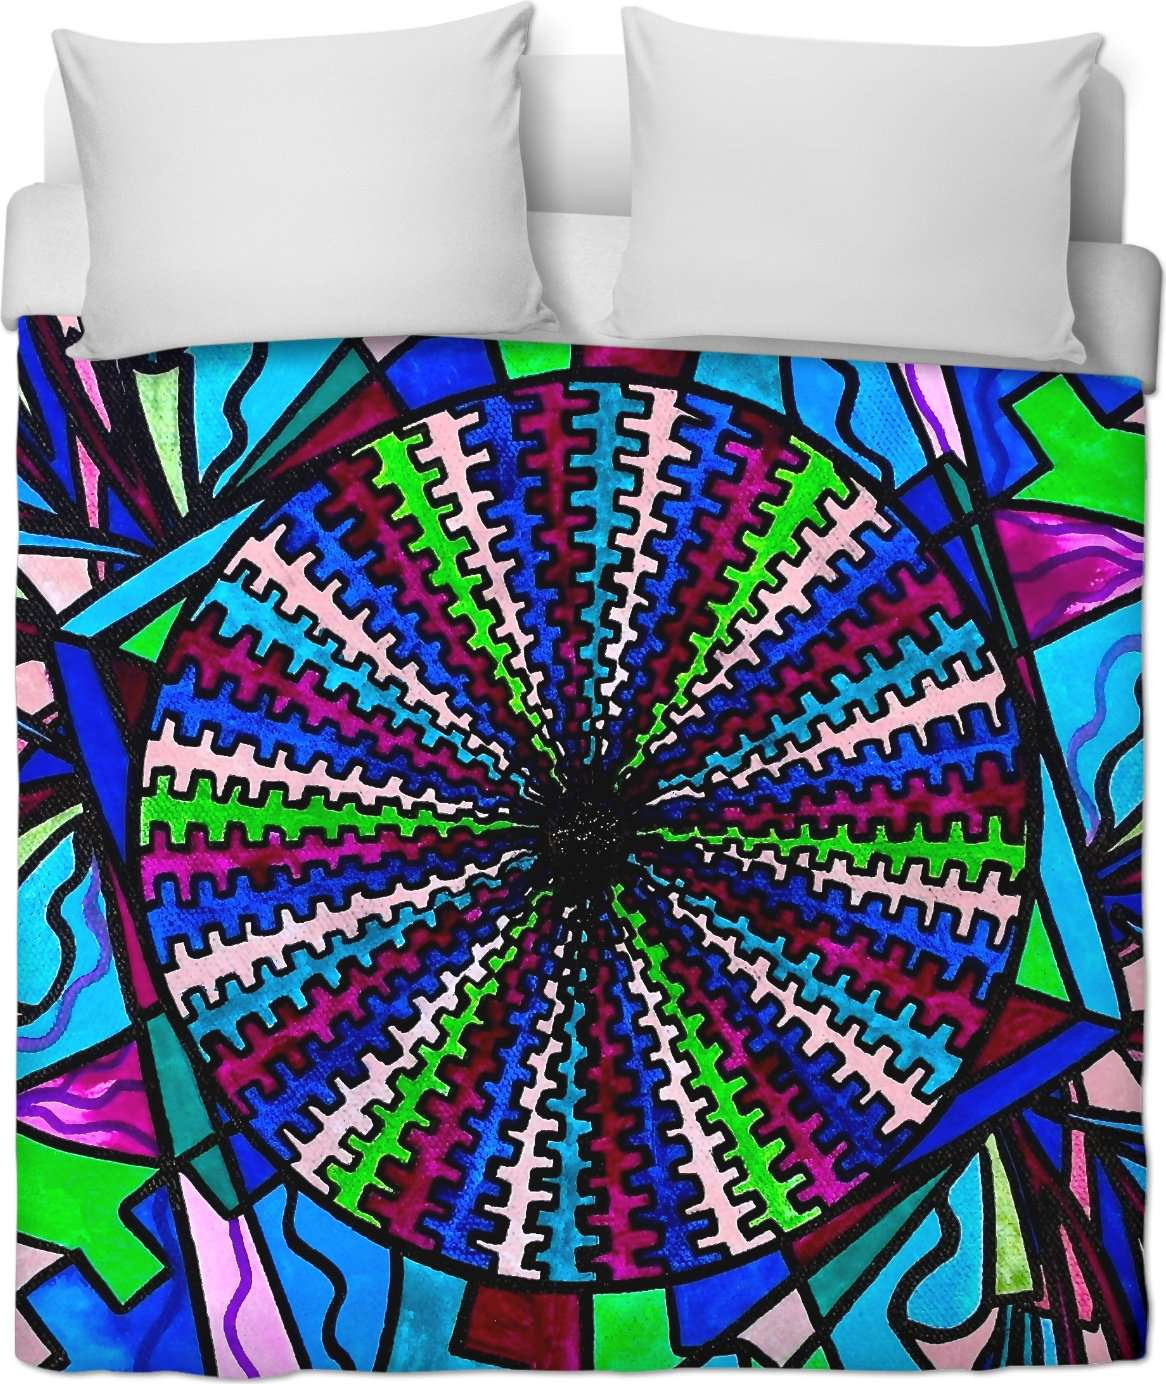 Pleiadian Integration Lightwork Model - Duvet Cover